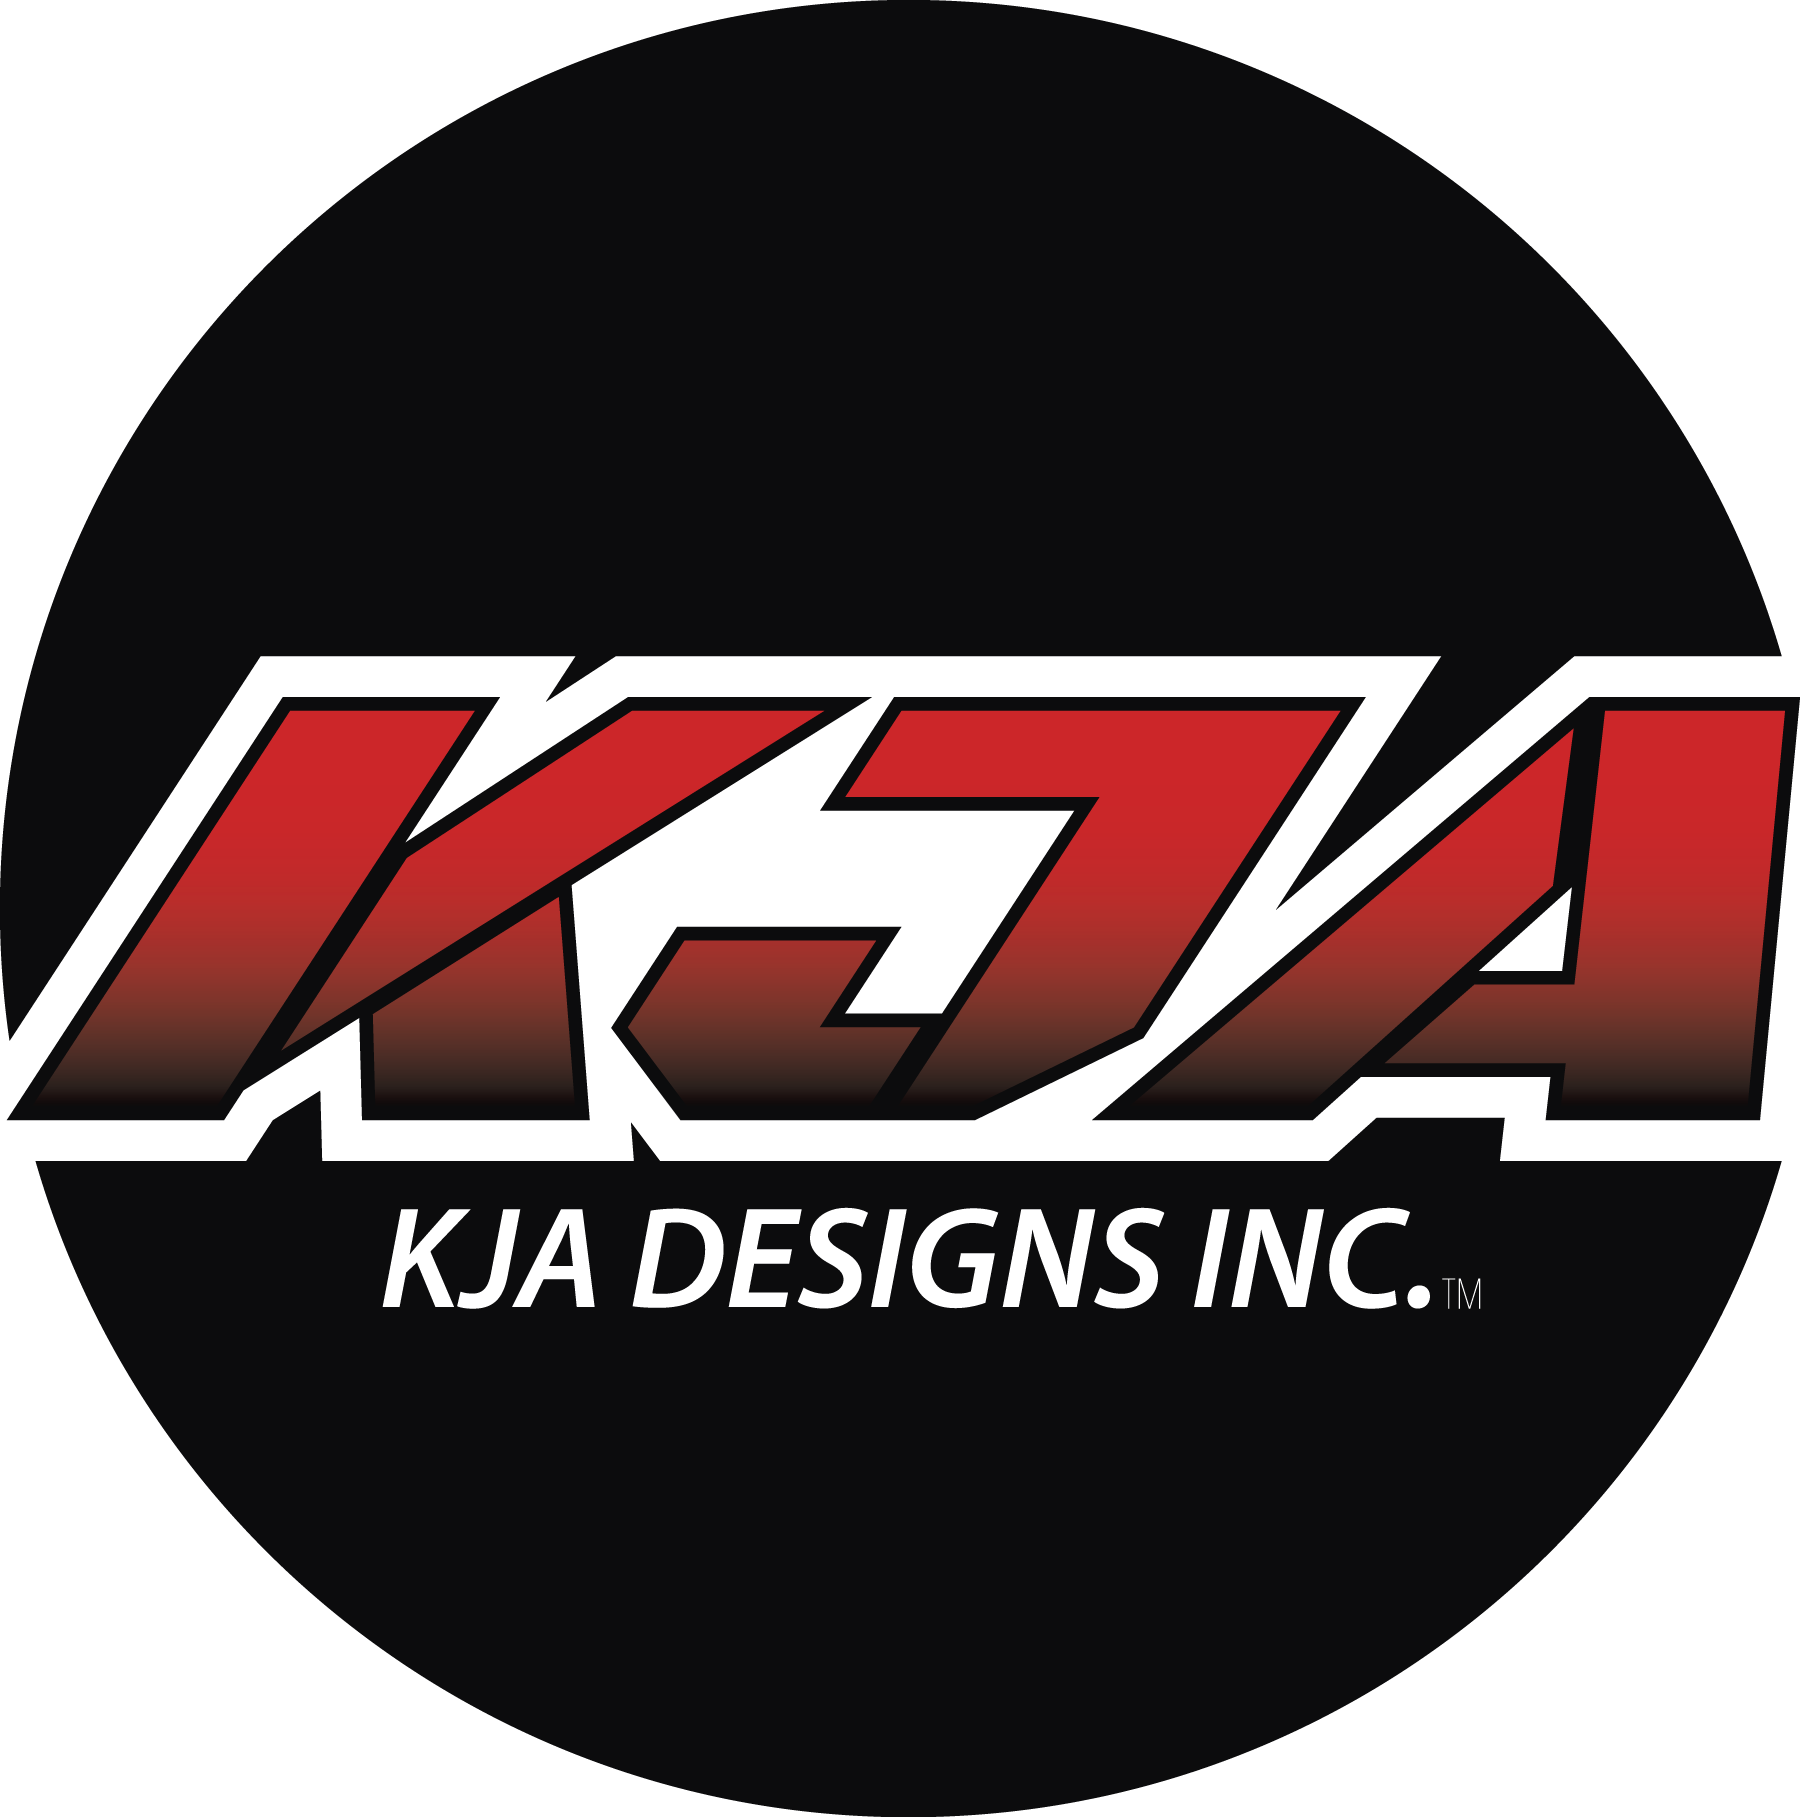 KJA Designs Inc.™ 3C on site